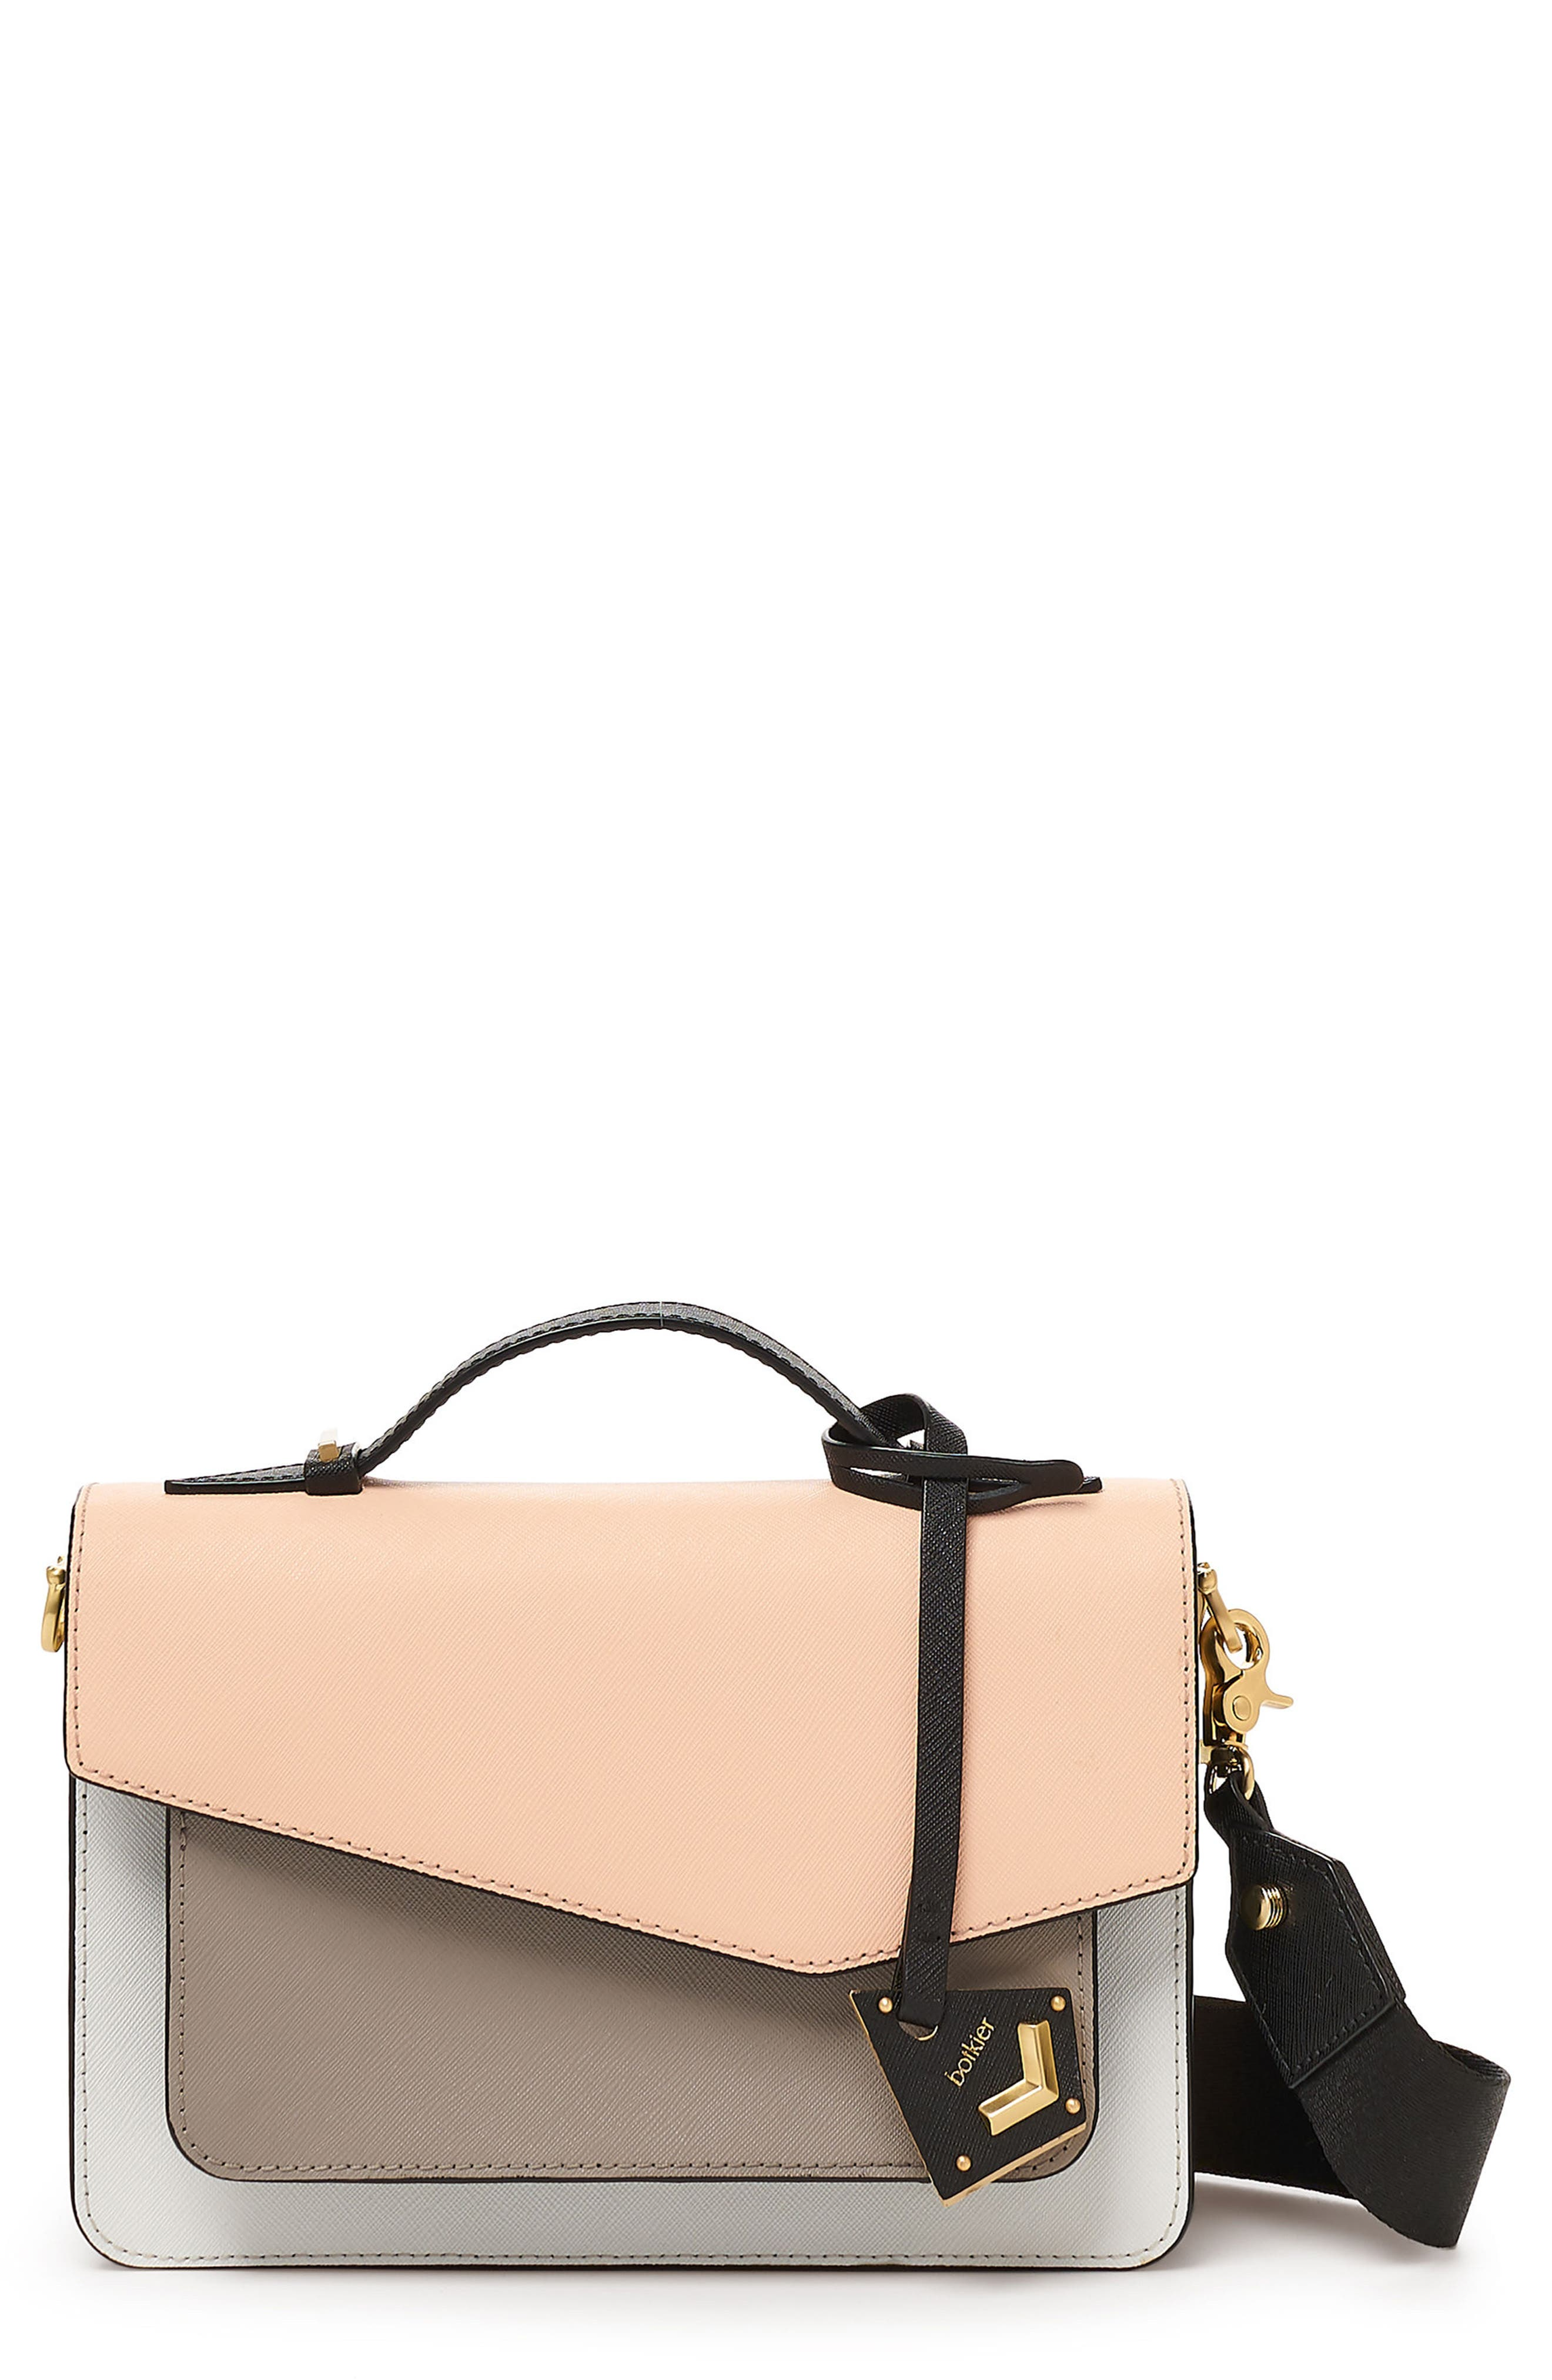 Main Image - Botkier Cobble Hill Leather Crossbody Bag